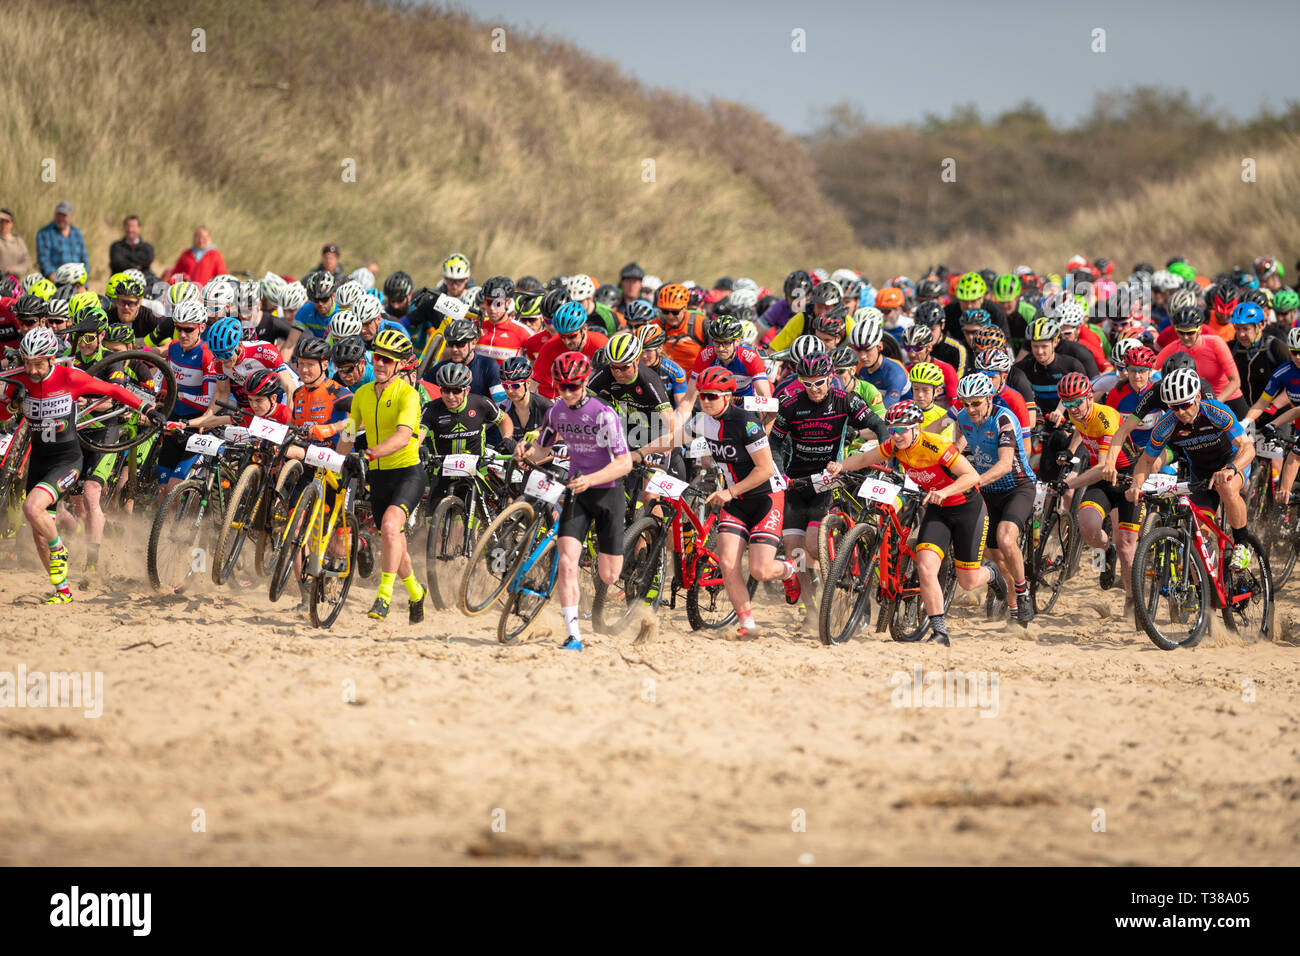 Pembrey Country Park, South Wales, UK. 7 avril, 2019. Les départs en masse. Plus d'un millier de cyclistes ont pris à la plage pour la bataille de 2019 sur la plage. La course a 3 tours y compris à environ 5km de la plage de sprint par tour. Credit : Sidney Bruere/Alamy Live News Photo Stock